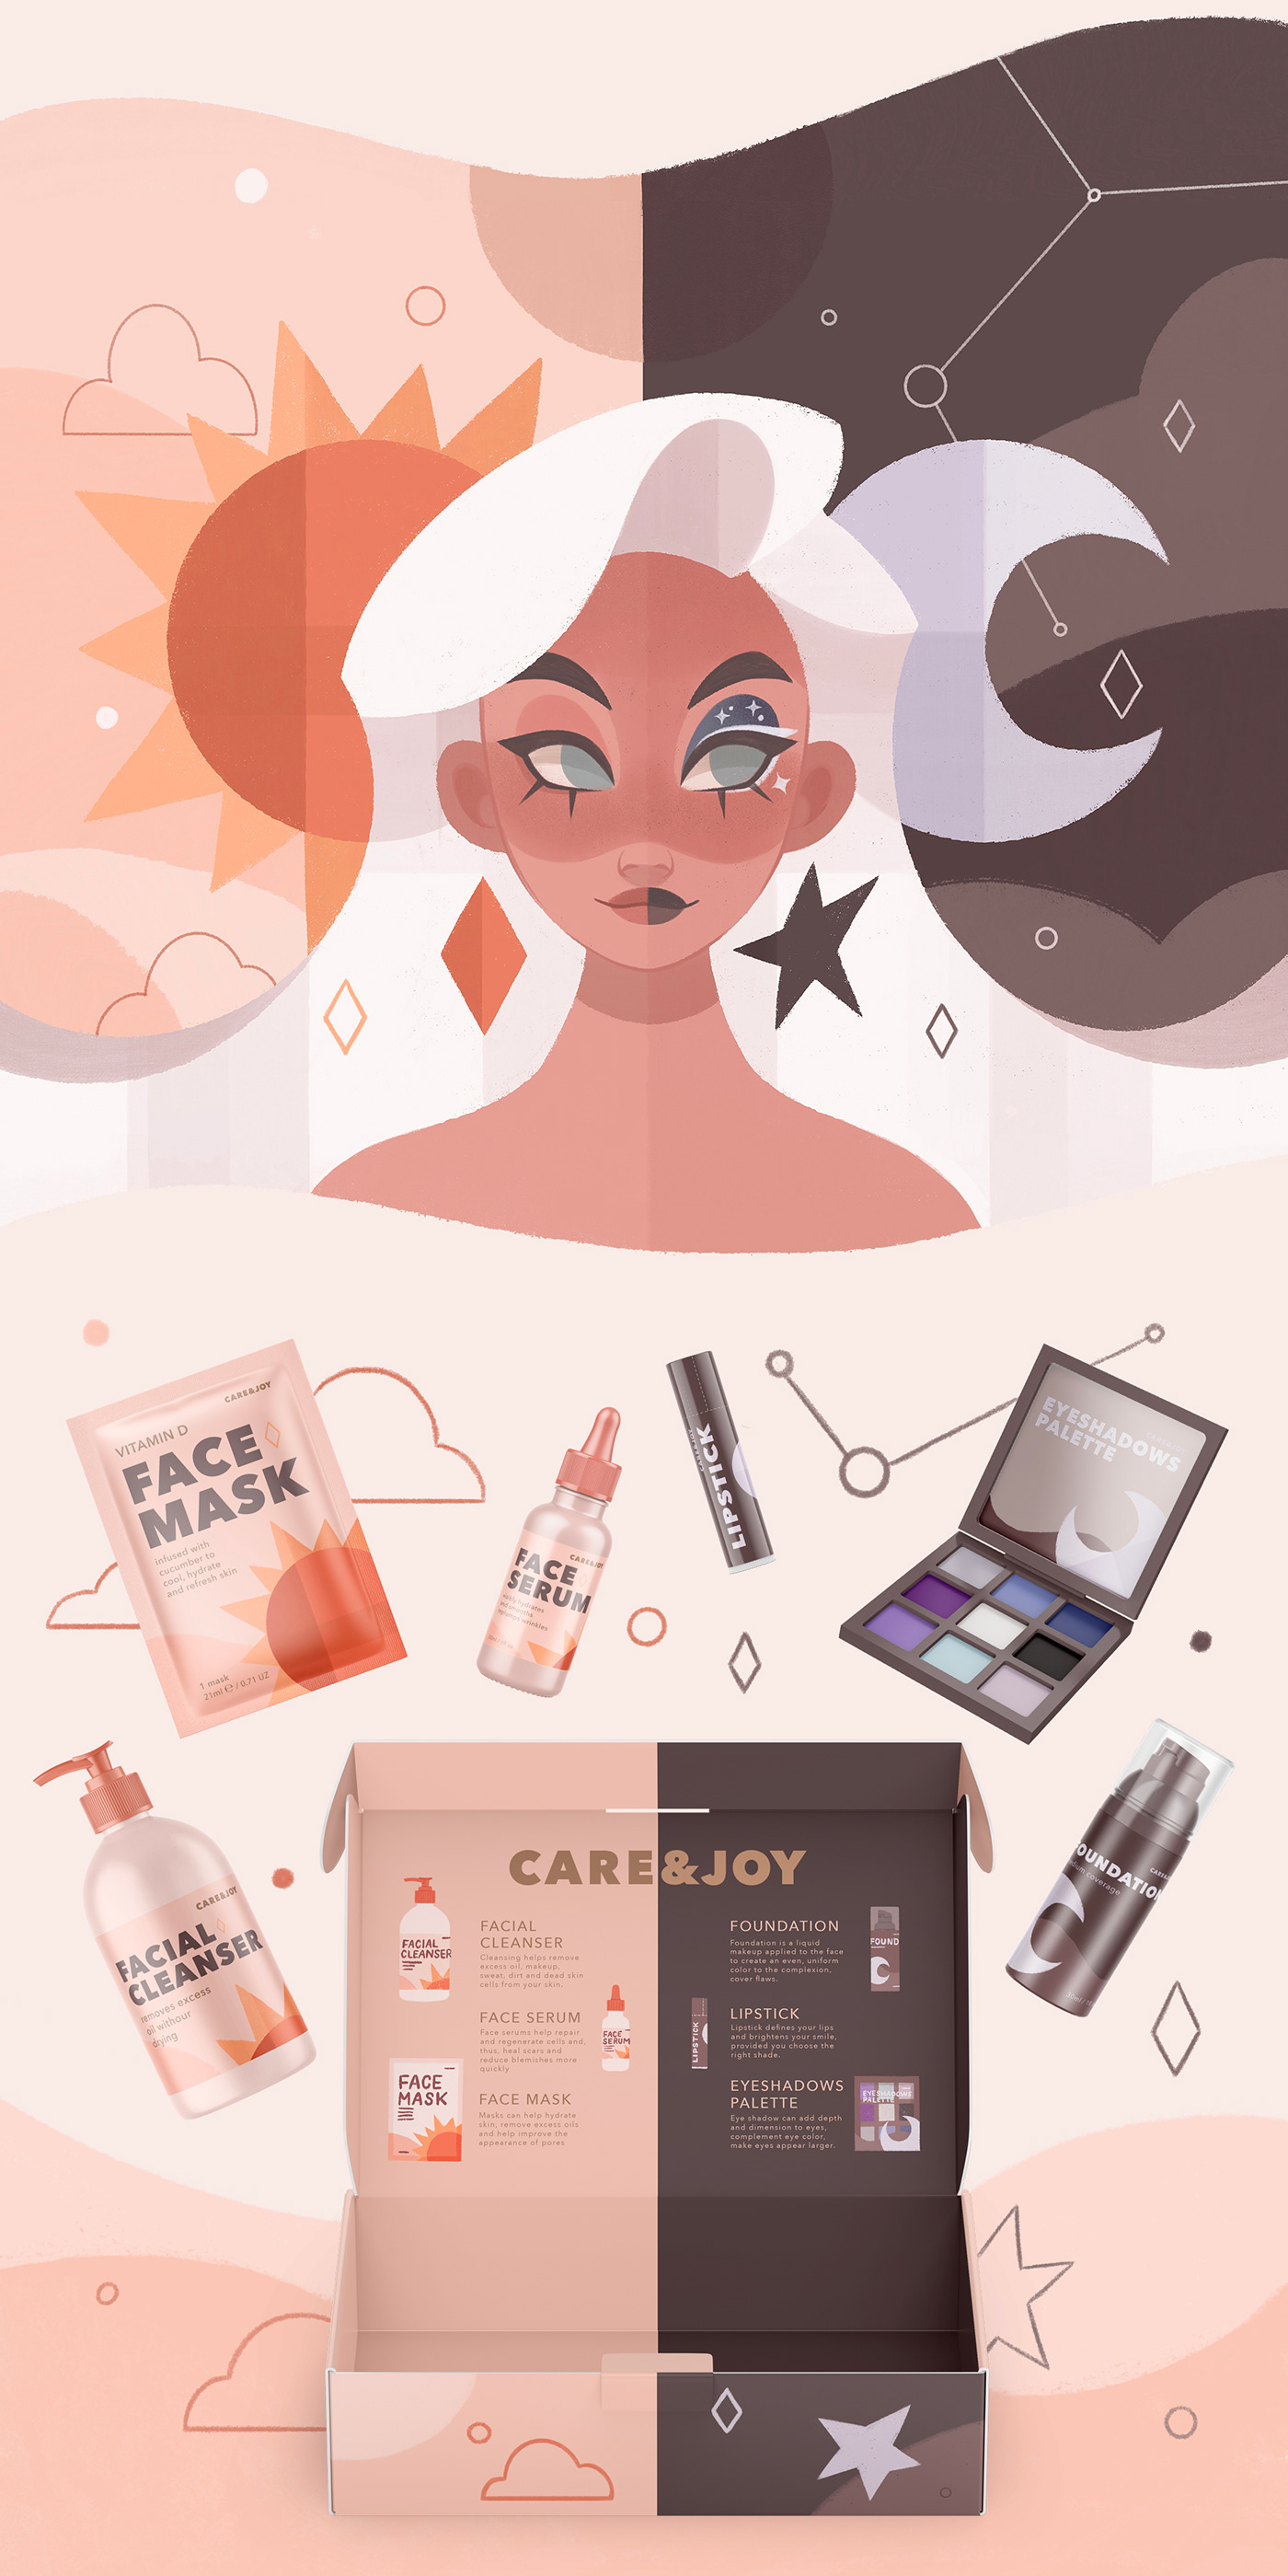 bag beauty box branding  Character design  cosmetics Packaging selfcare skincare stickers